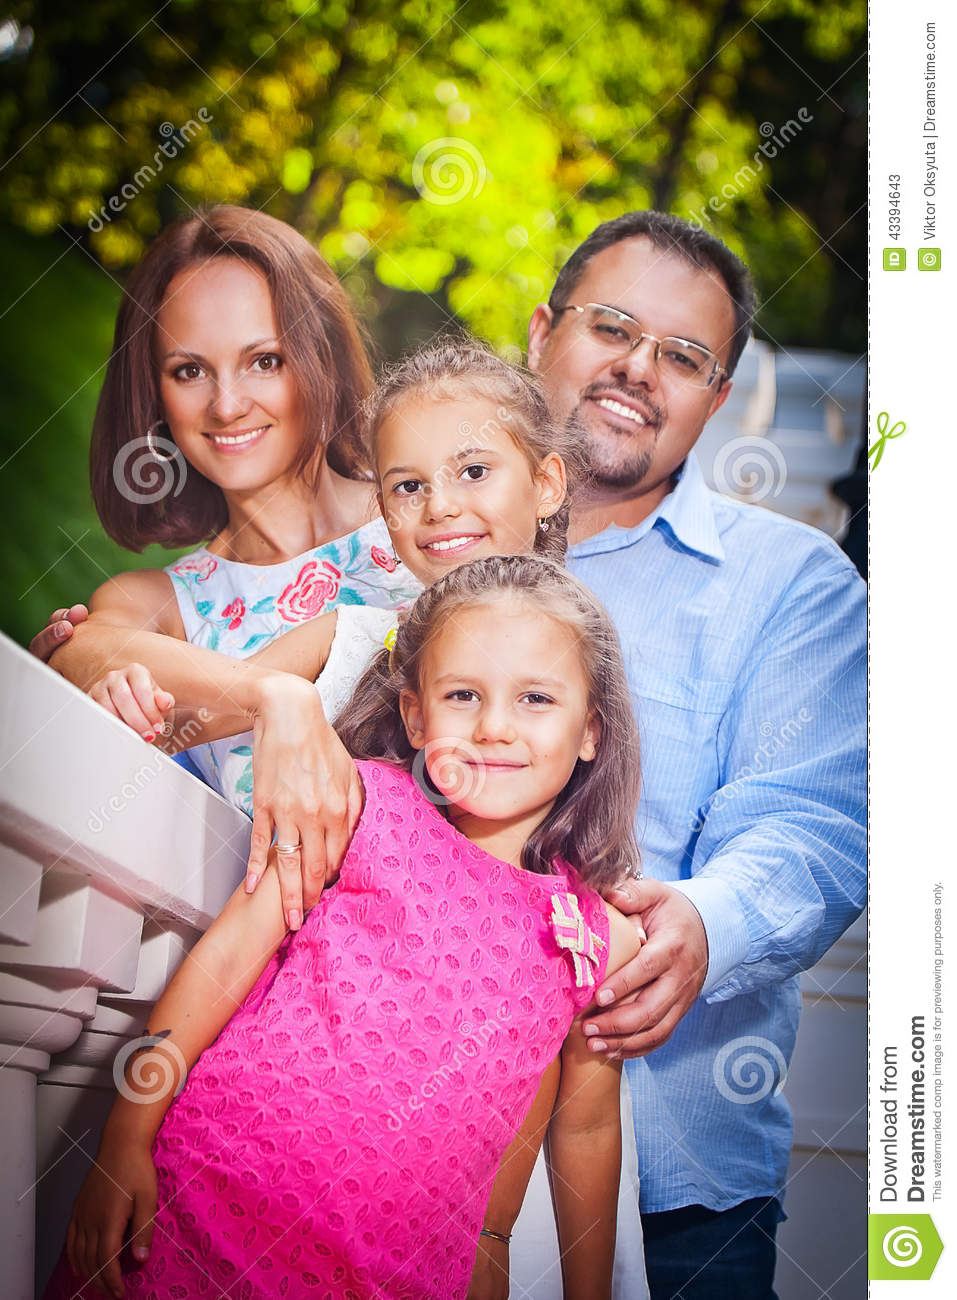 Happy Family Stock Photo - Image: 43394643